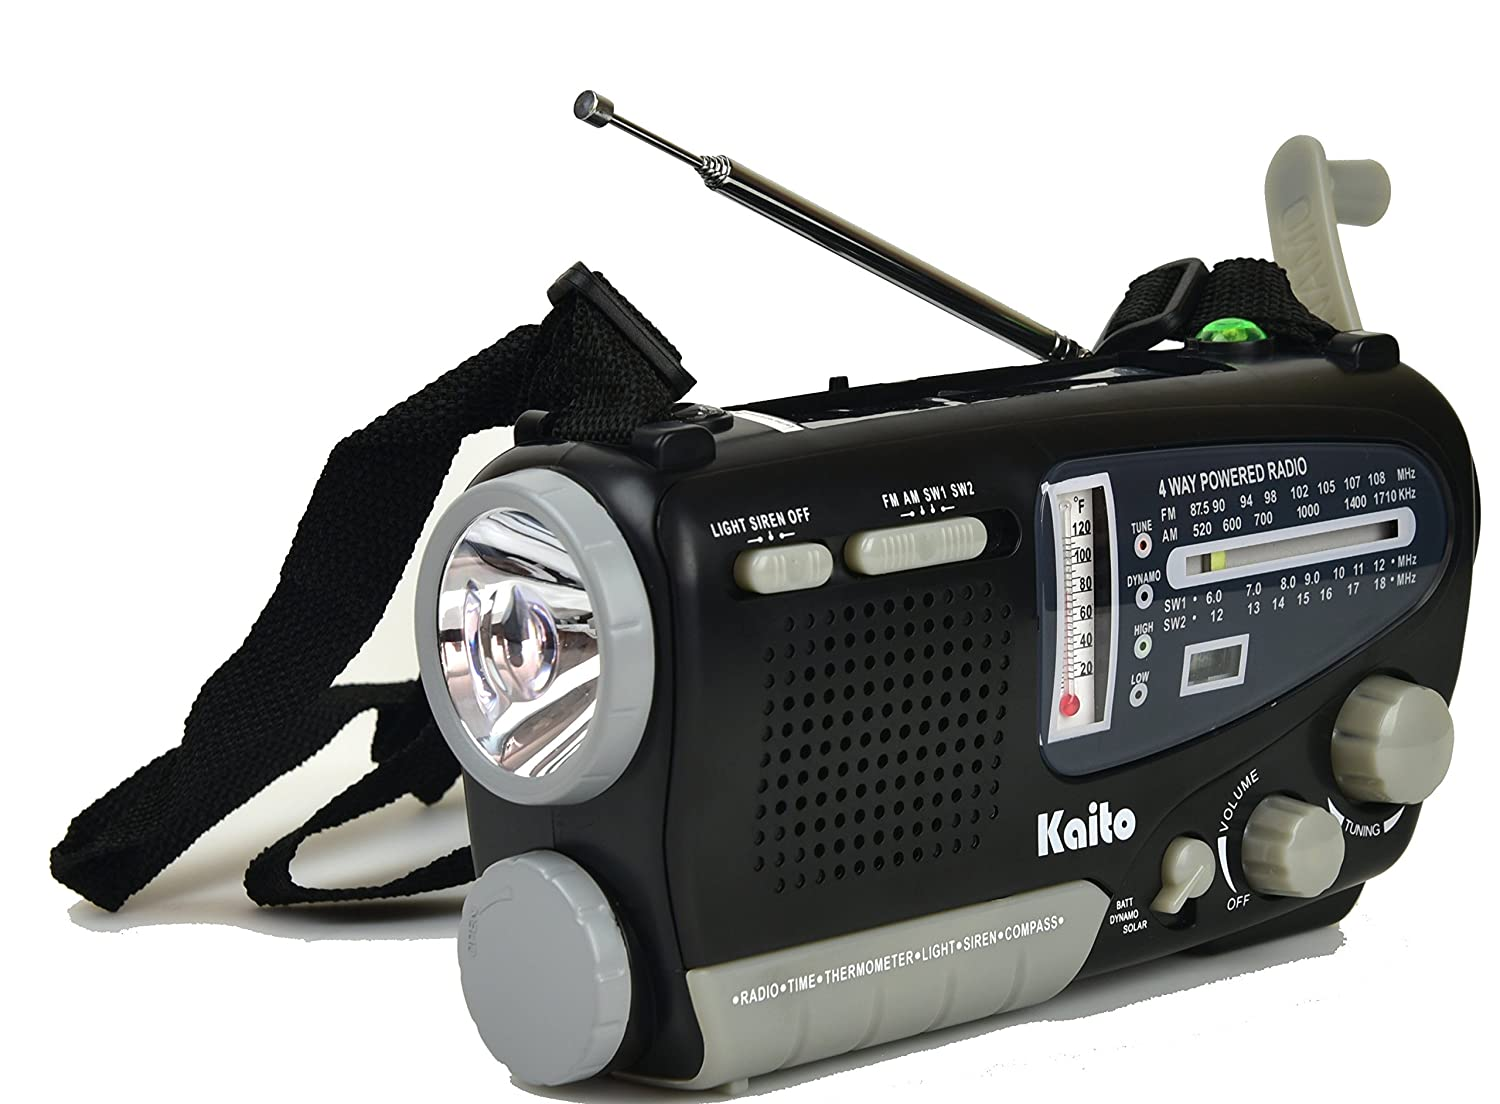 Amazon.com: Kaito KA888 4-way Powered Emergency Radio, AM FM Shortwave  Bands, and Comes with Alarm Clock, Thermometer,Compass and Flashlight: Home  Audio & ...